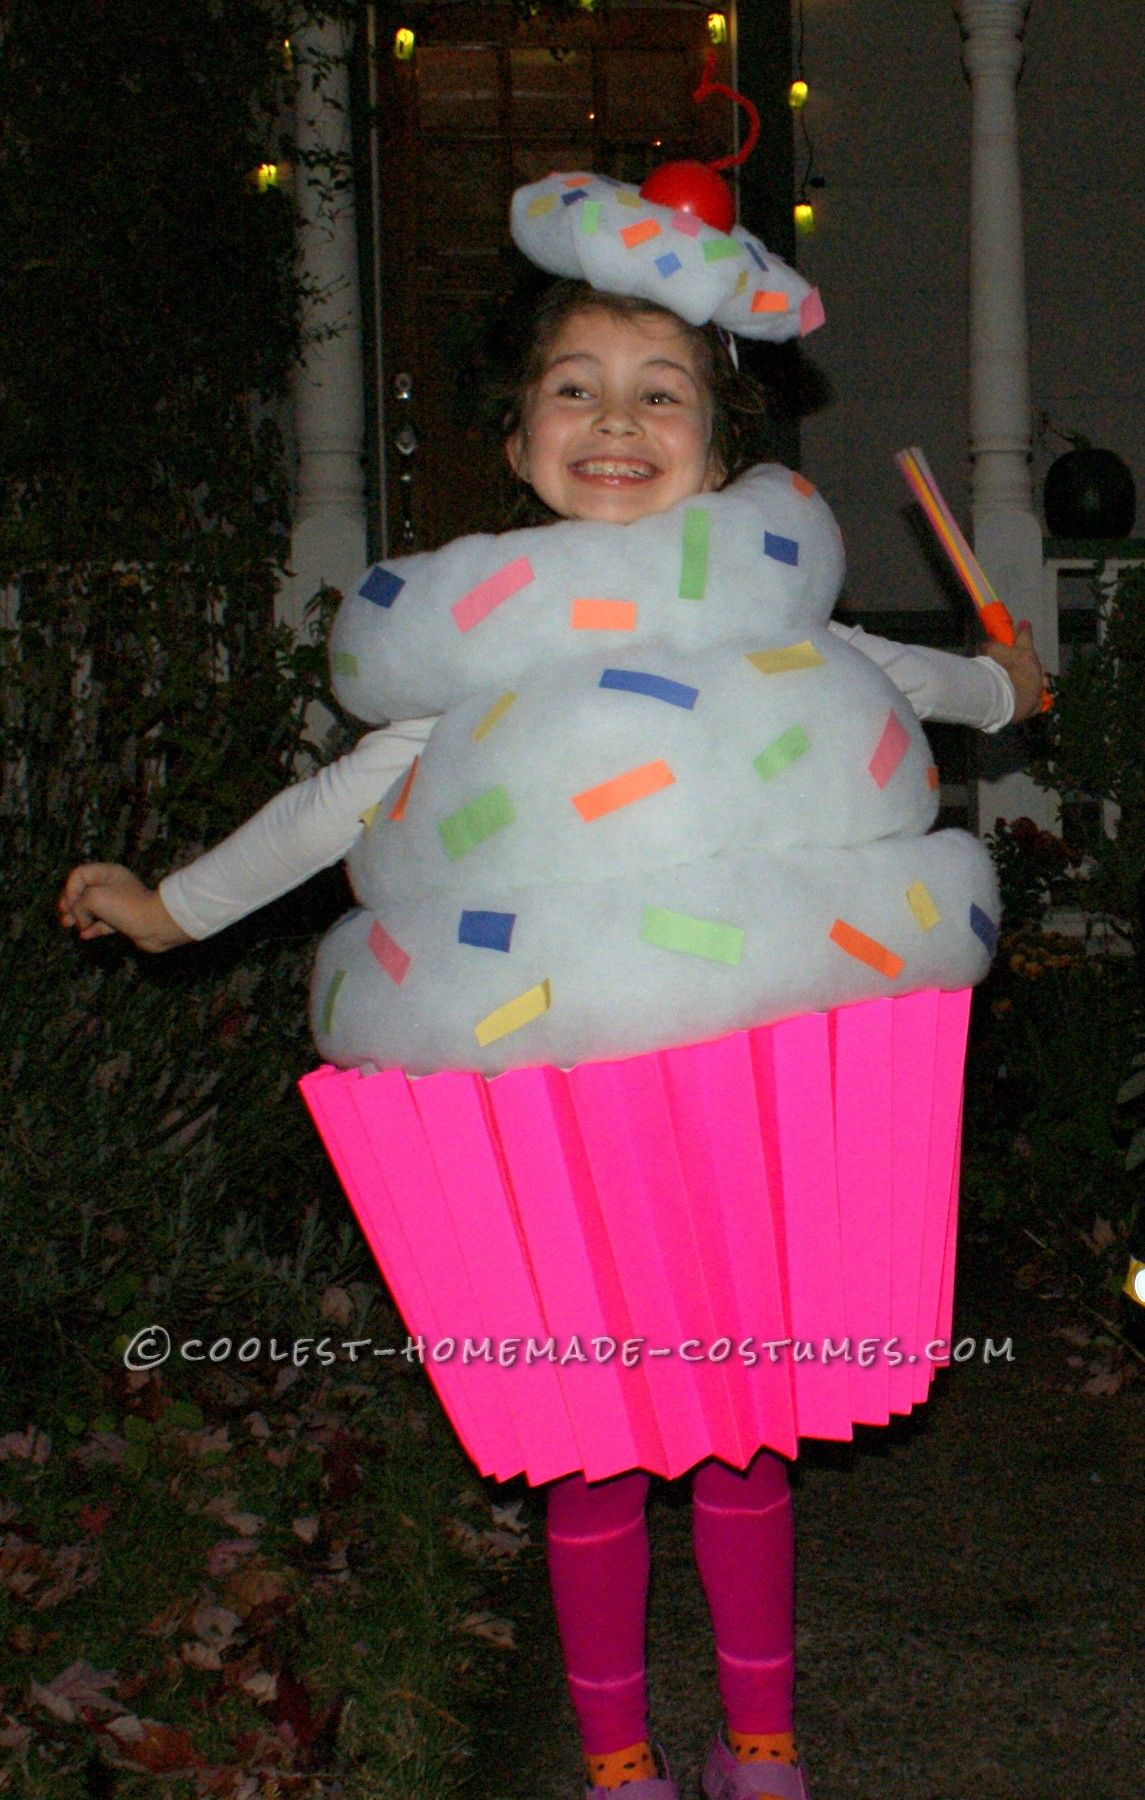 Coolest Homemade Halloween Costume Ideas and Tips | Homemade ...